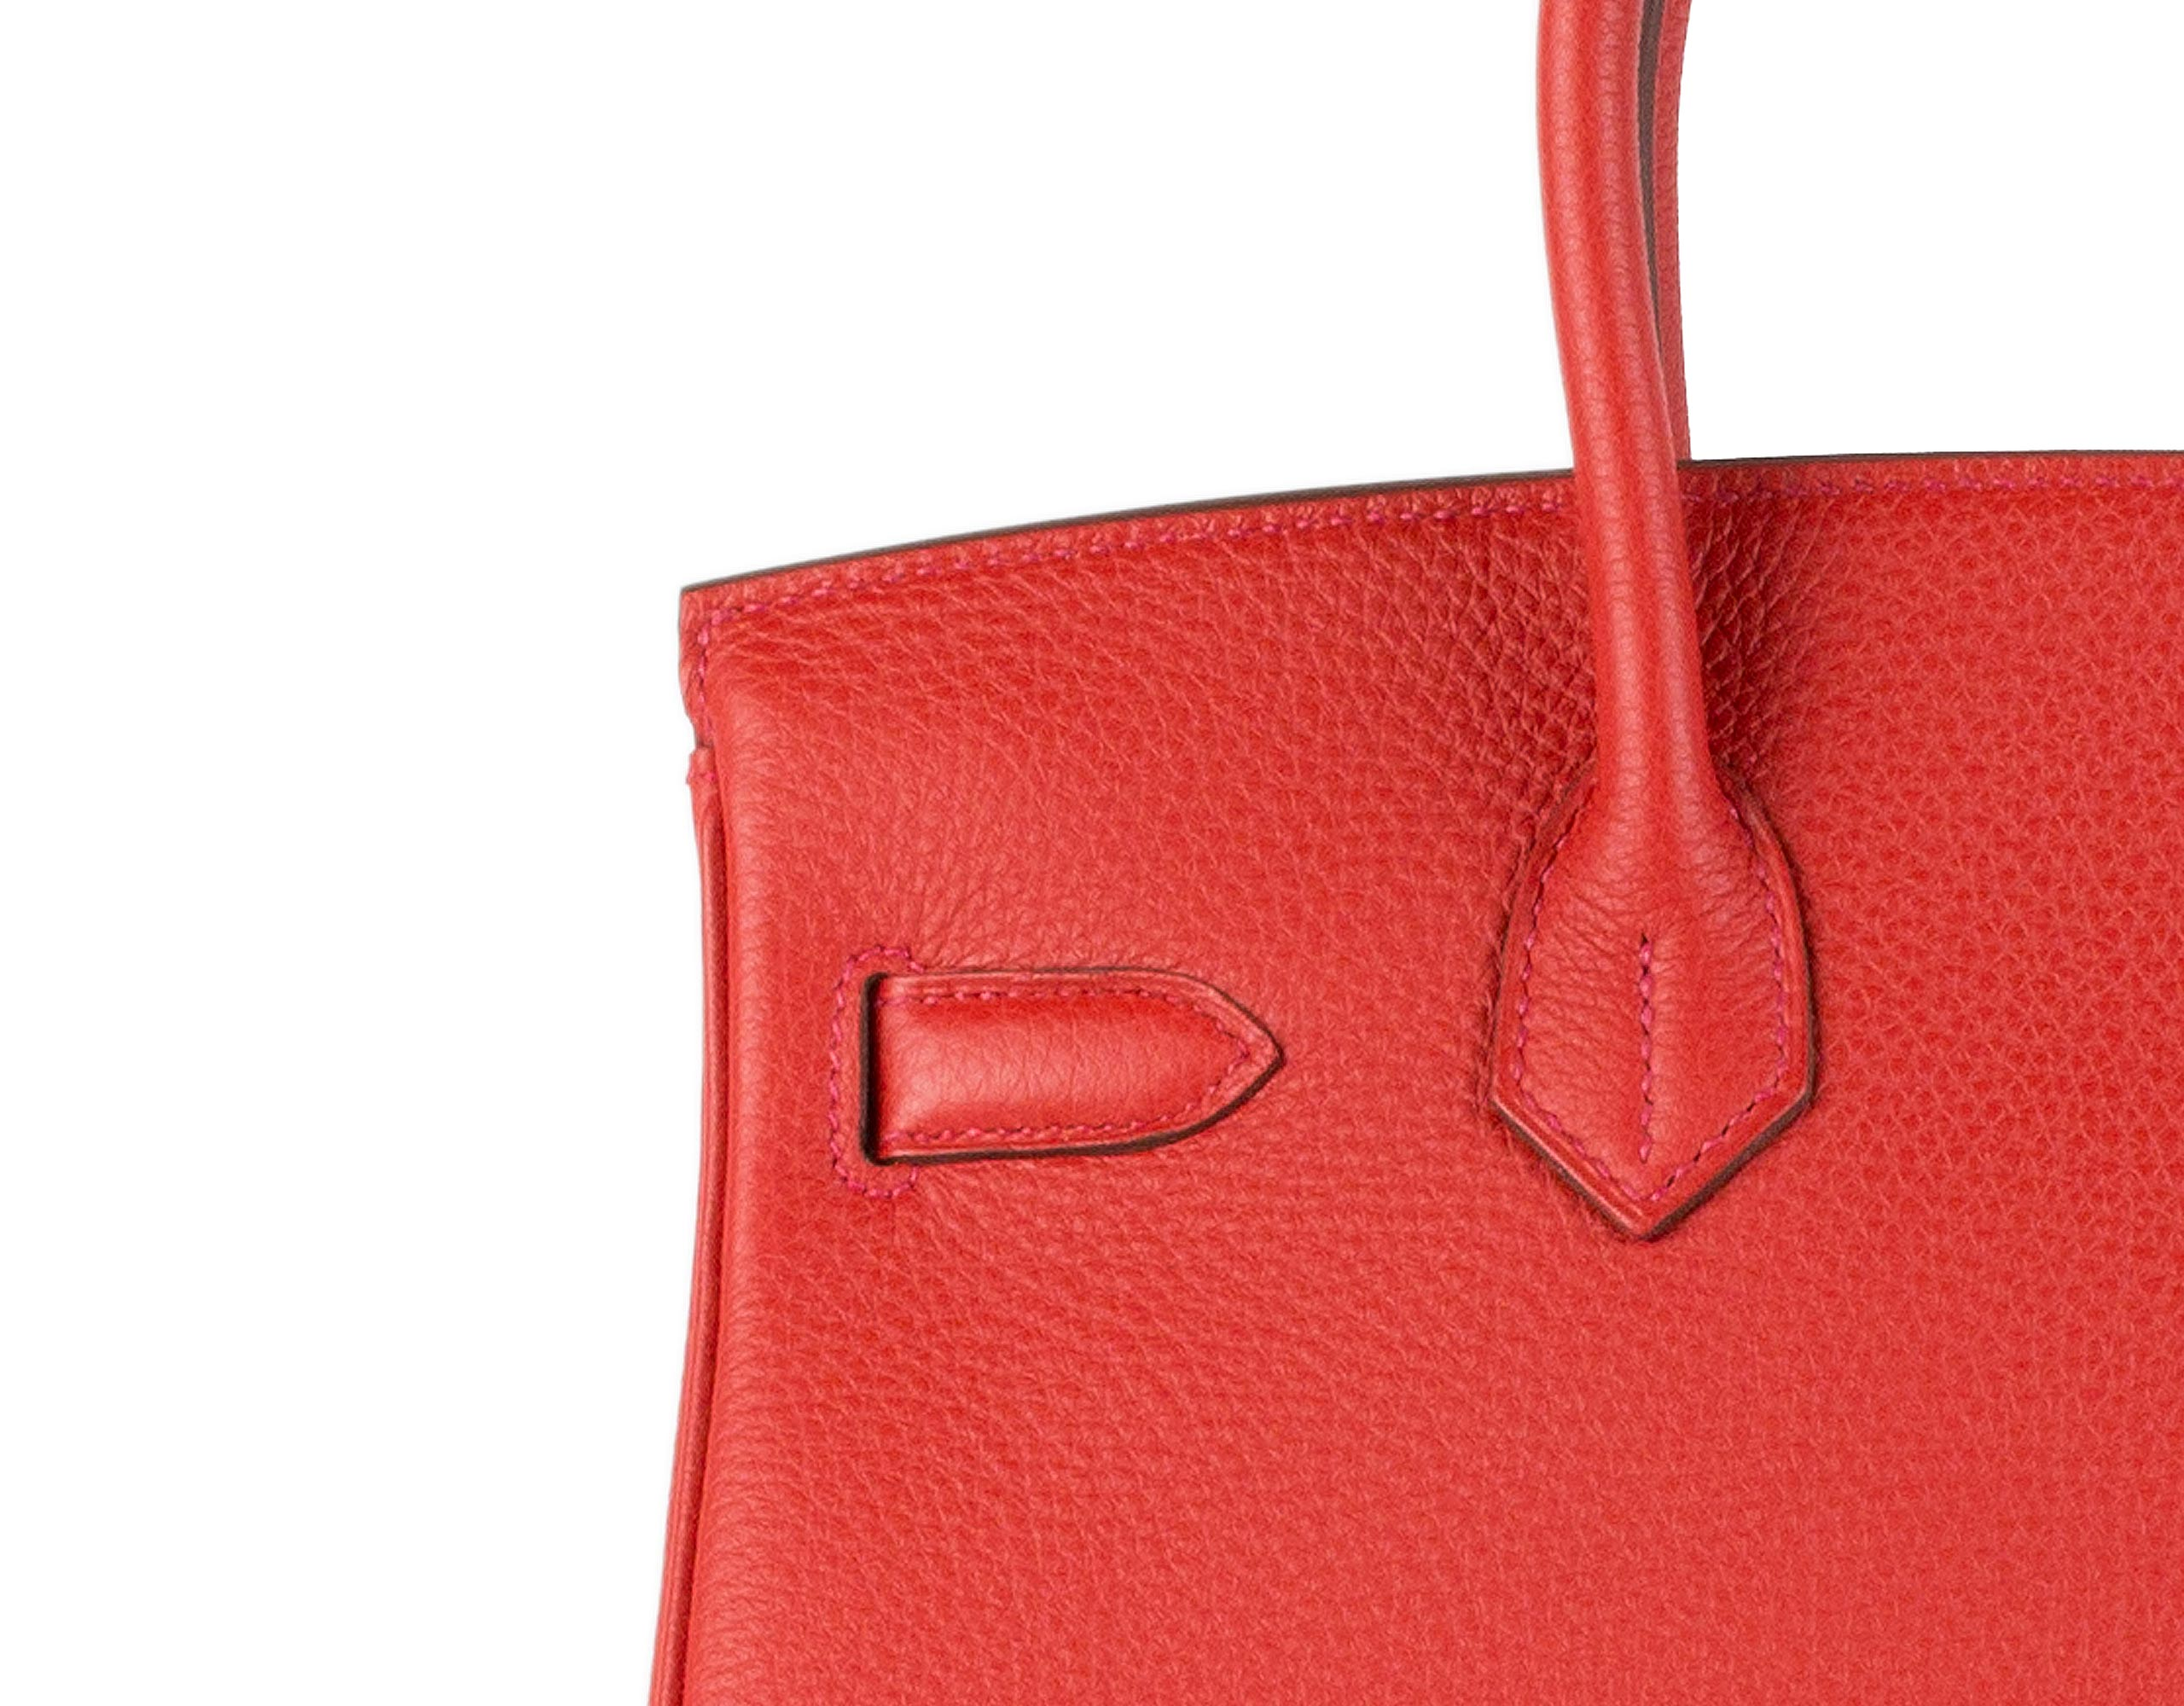 fake hermes purse - hermes 30 cm geranium togo leather red birkin- 30 cm ghw, h purse